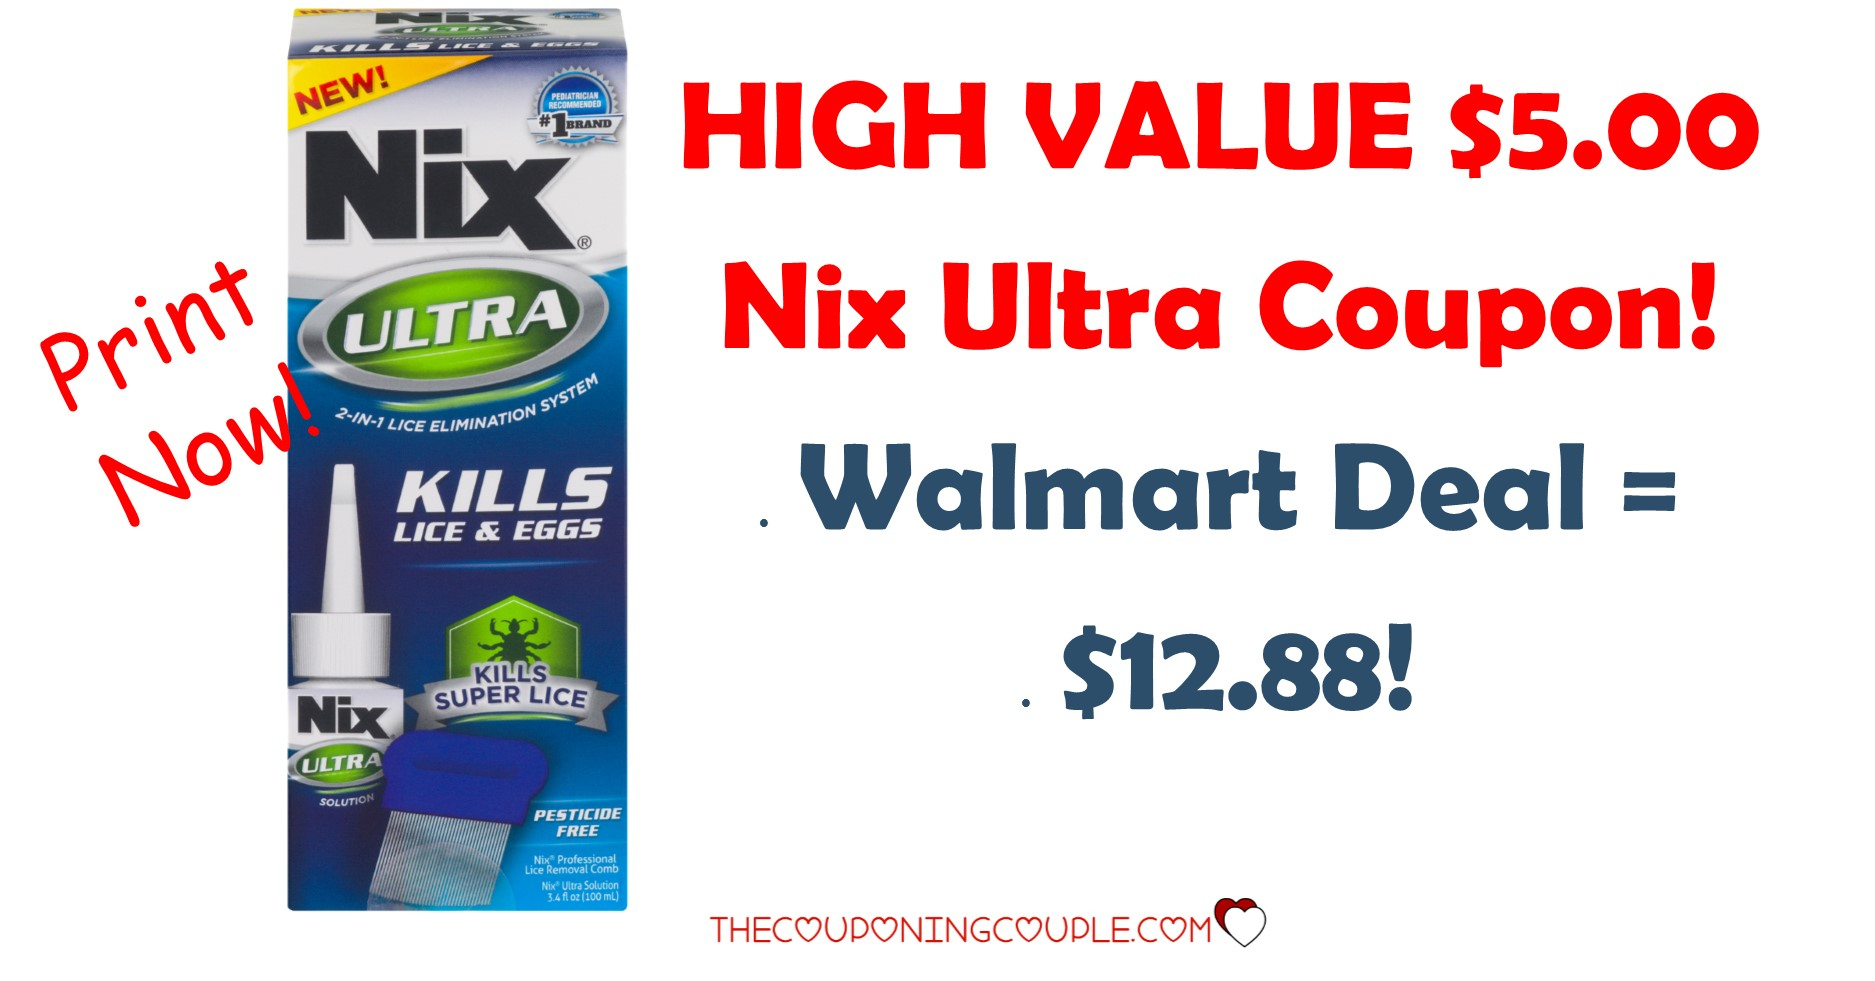 $5.00 Nix Ultra High Value Coupon + Walmart Deal! - Free High Value Printable Coupons